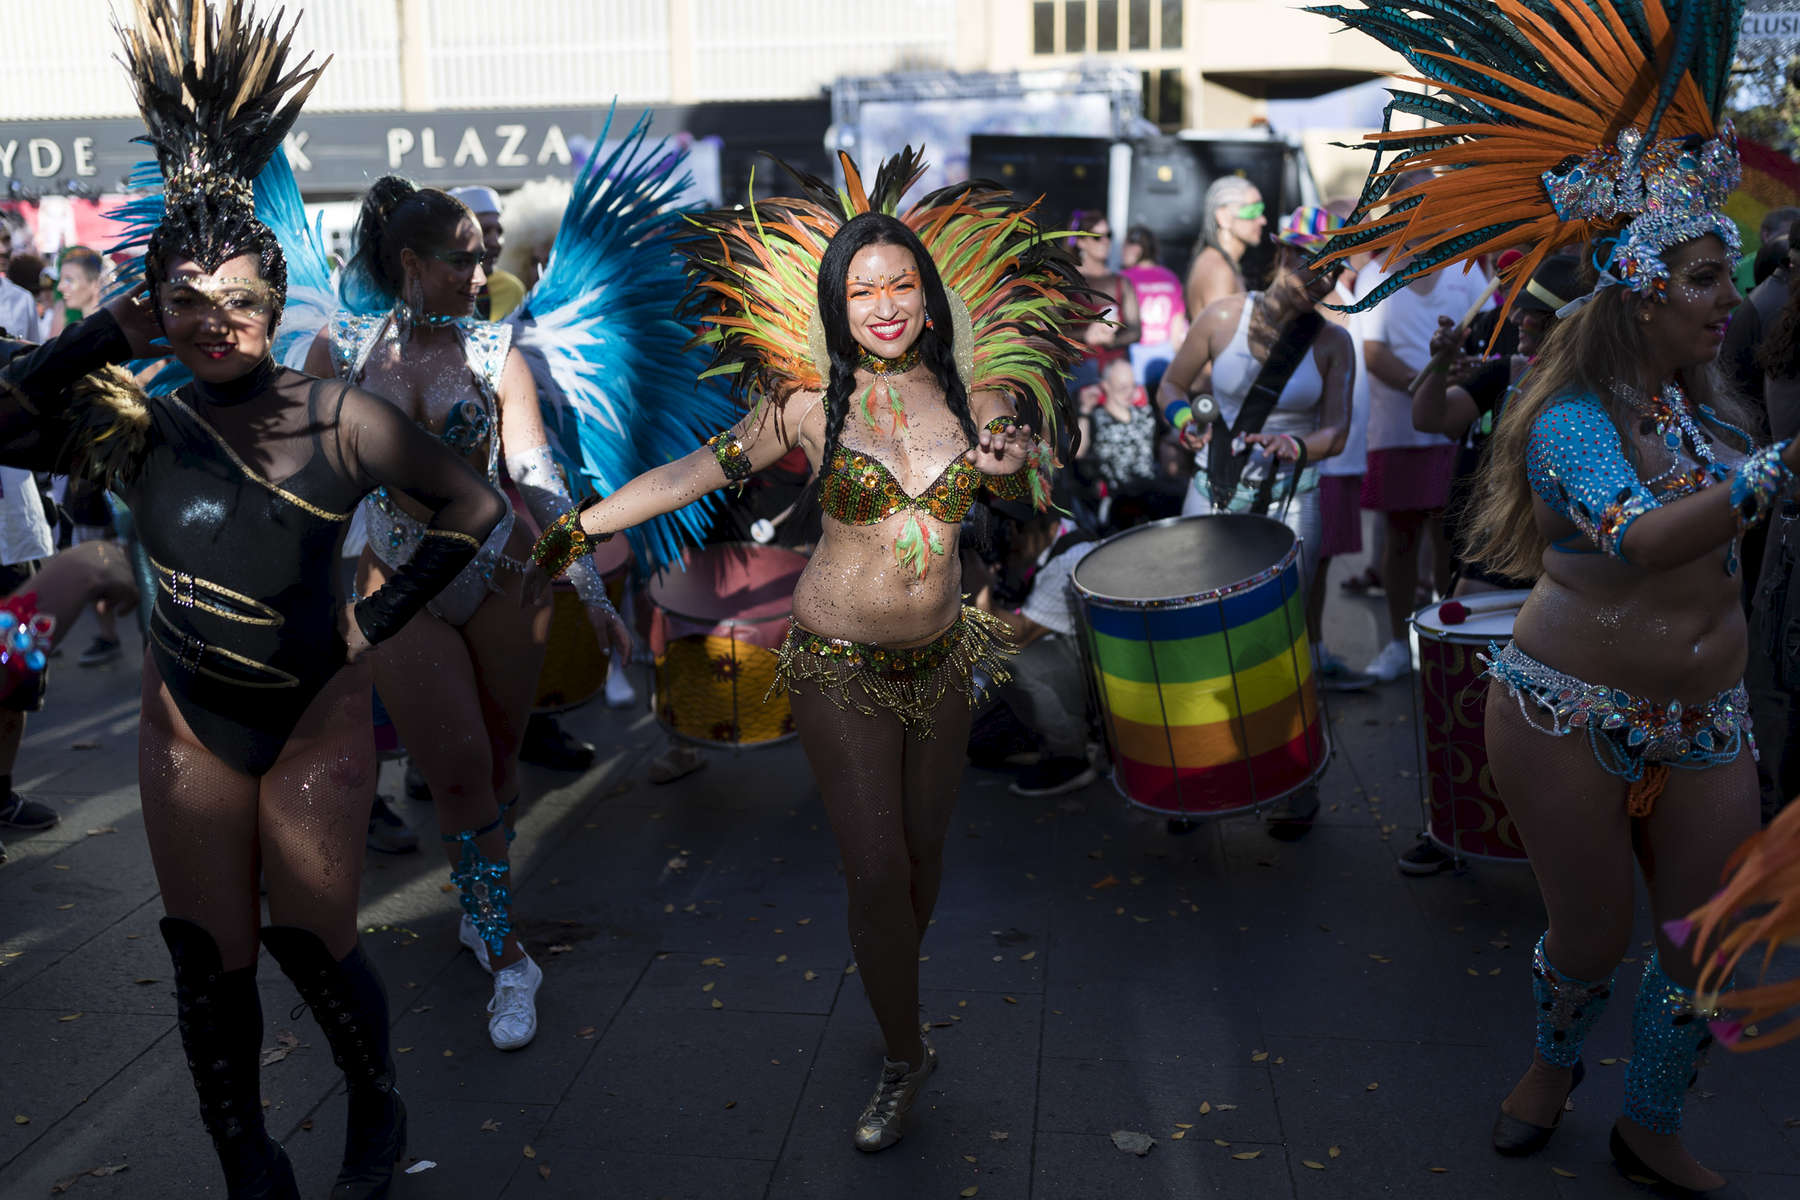 SYDNEY, NEW SOUTH WALES - MARCH 03:  Carinval dance on Oxford Street before the start of the 2018 Sydney Gay & Lesbian Mardi Gras Parade on March 3, 2018 in Sydney, Australia.  The Sydney Mardi Gras parade began in 1978 as a march and commemoration of the 1969 Stonewall Riots of New York. It is an annual event promoting awareness of gay, lesbian, bisexual and transgender issues and themes.  (Photo by Brook Mitchell/Getty Images)